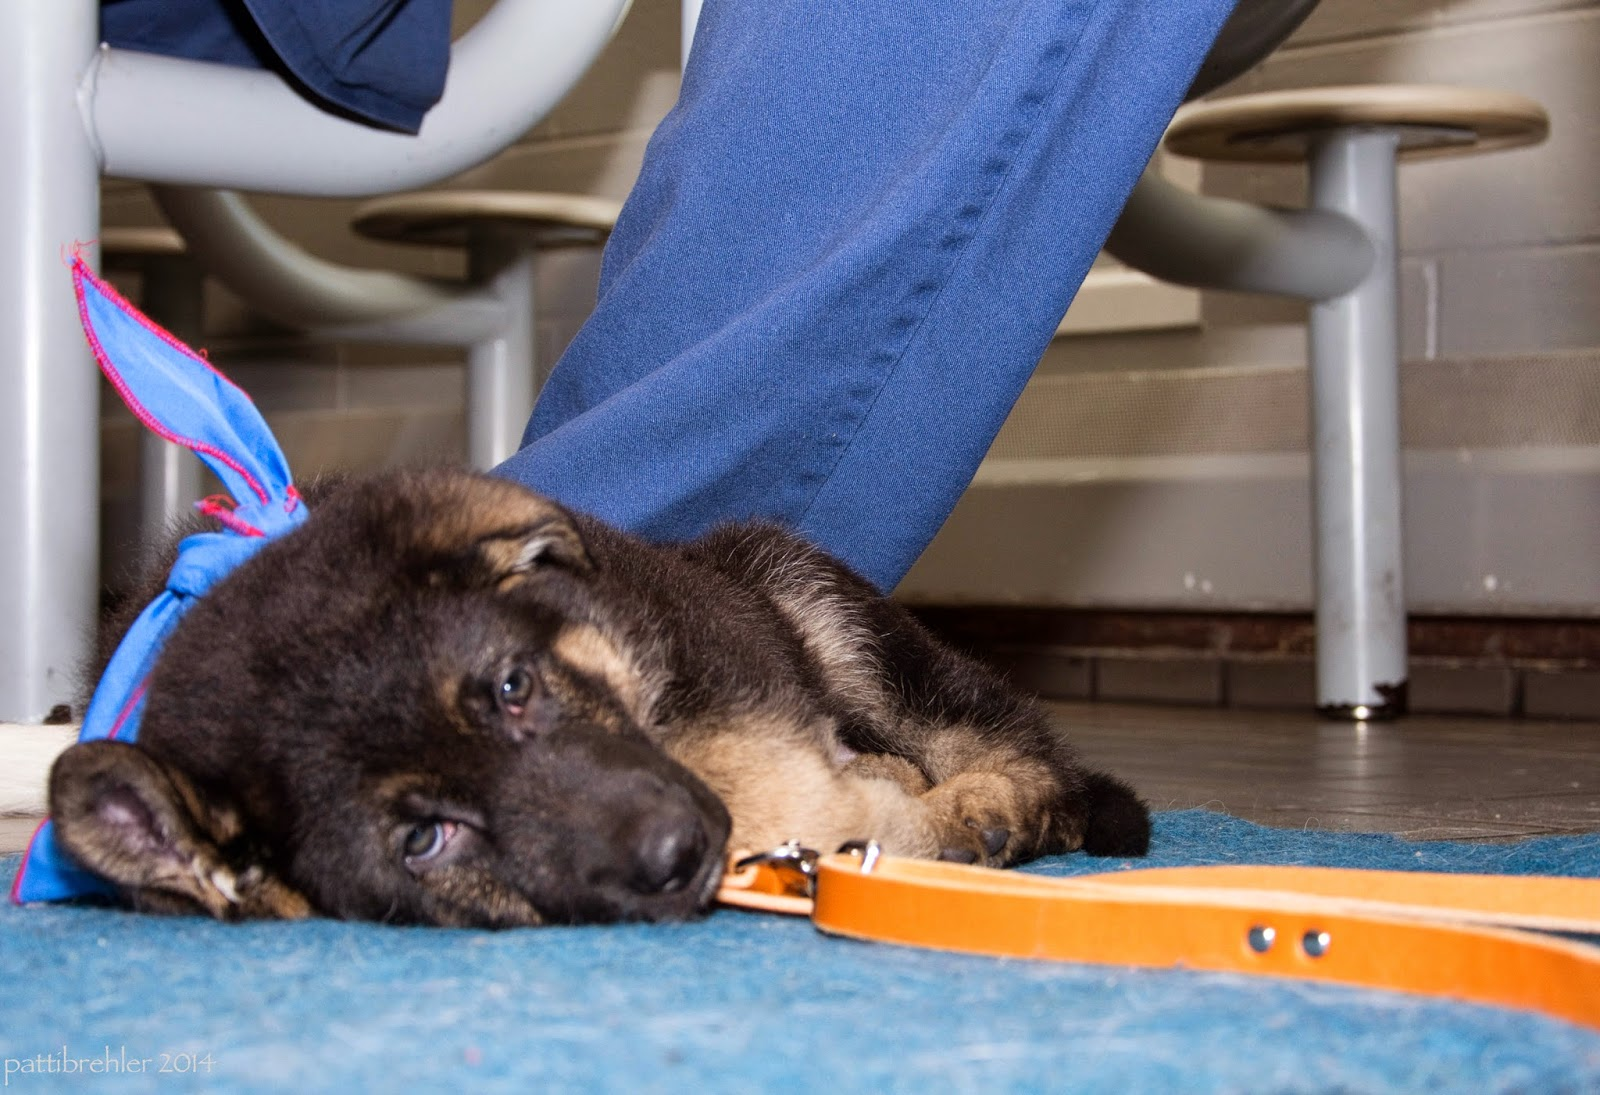 A close shot at floor level of a small german shepherd puppy lying on his right side on a blue mat with his head toward the camera. His leash is next to him and a man's leg in blue pants is behind him. There are lunchroom seats in the background.